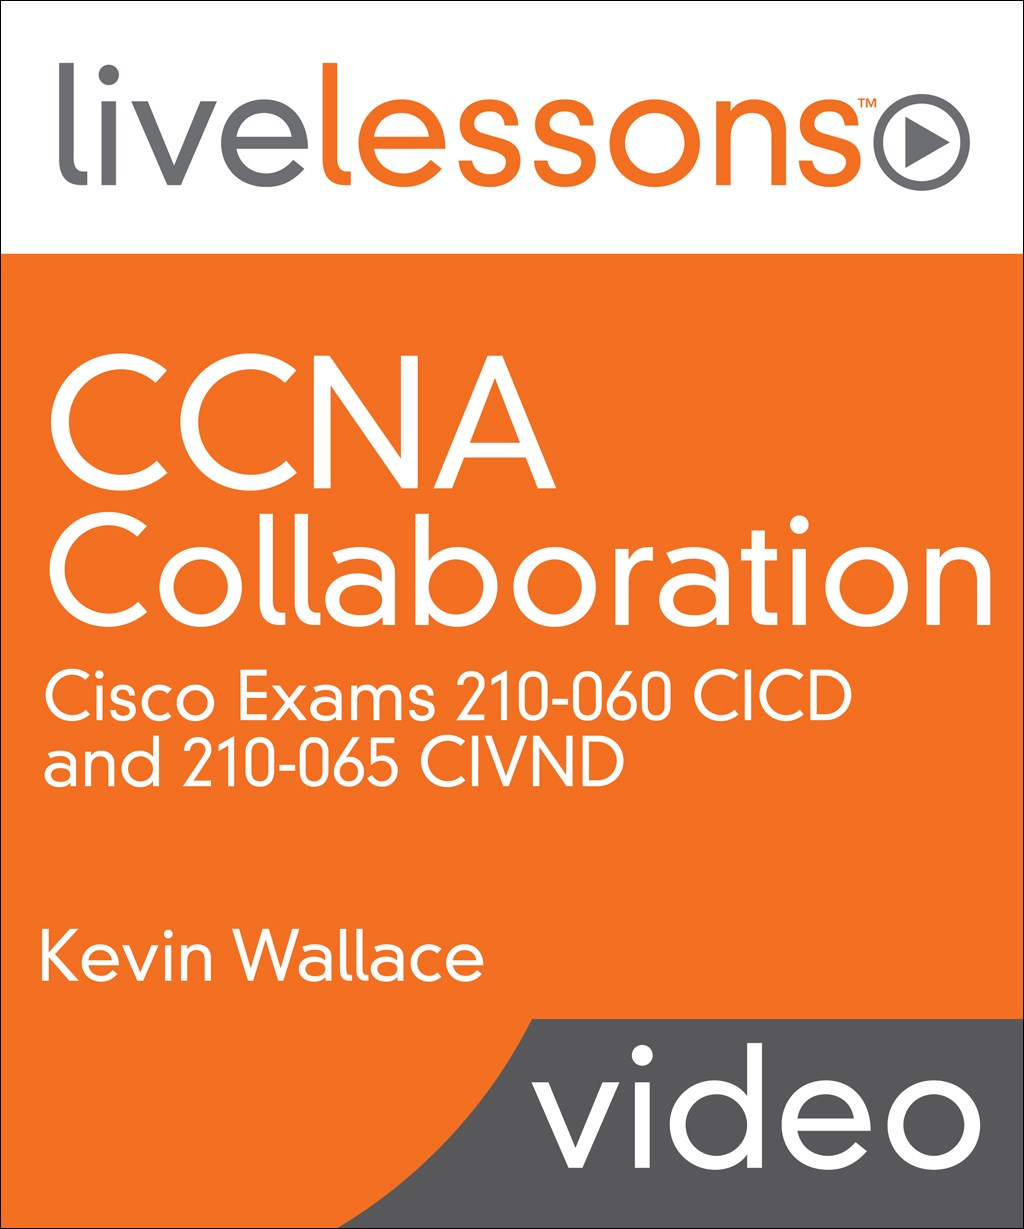 CCNA Collaboration LiveLessons: Cisco Exams 210-060 CICD and 210-065 CIVND